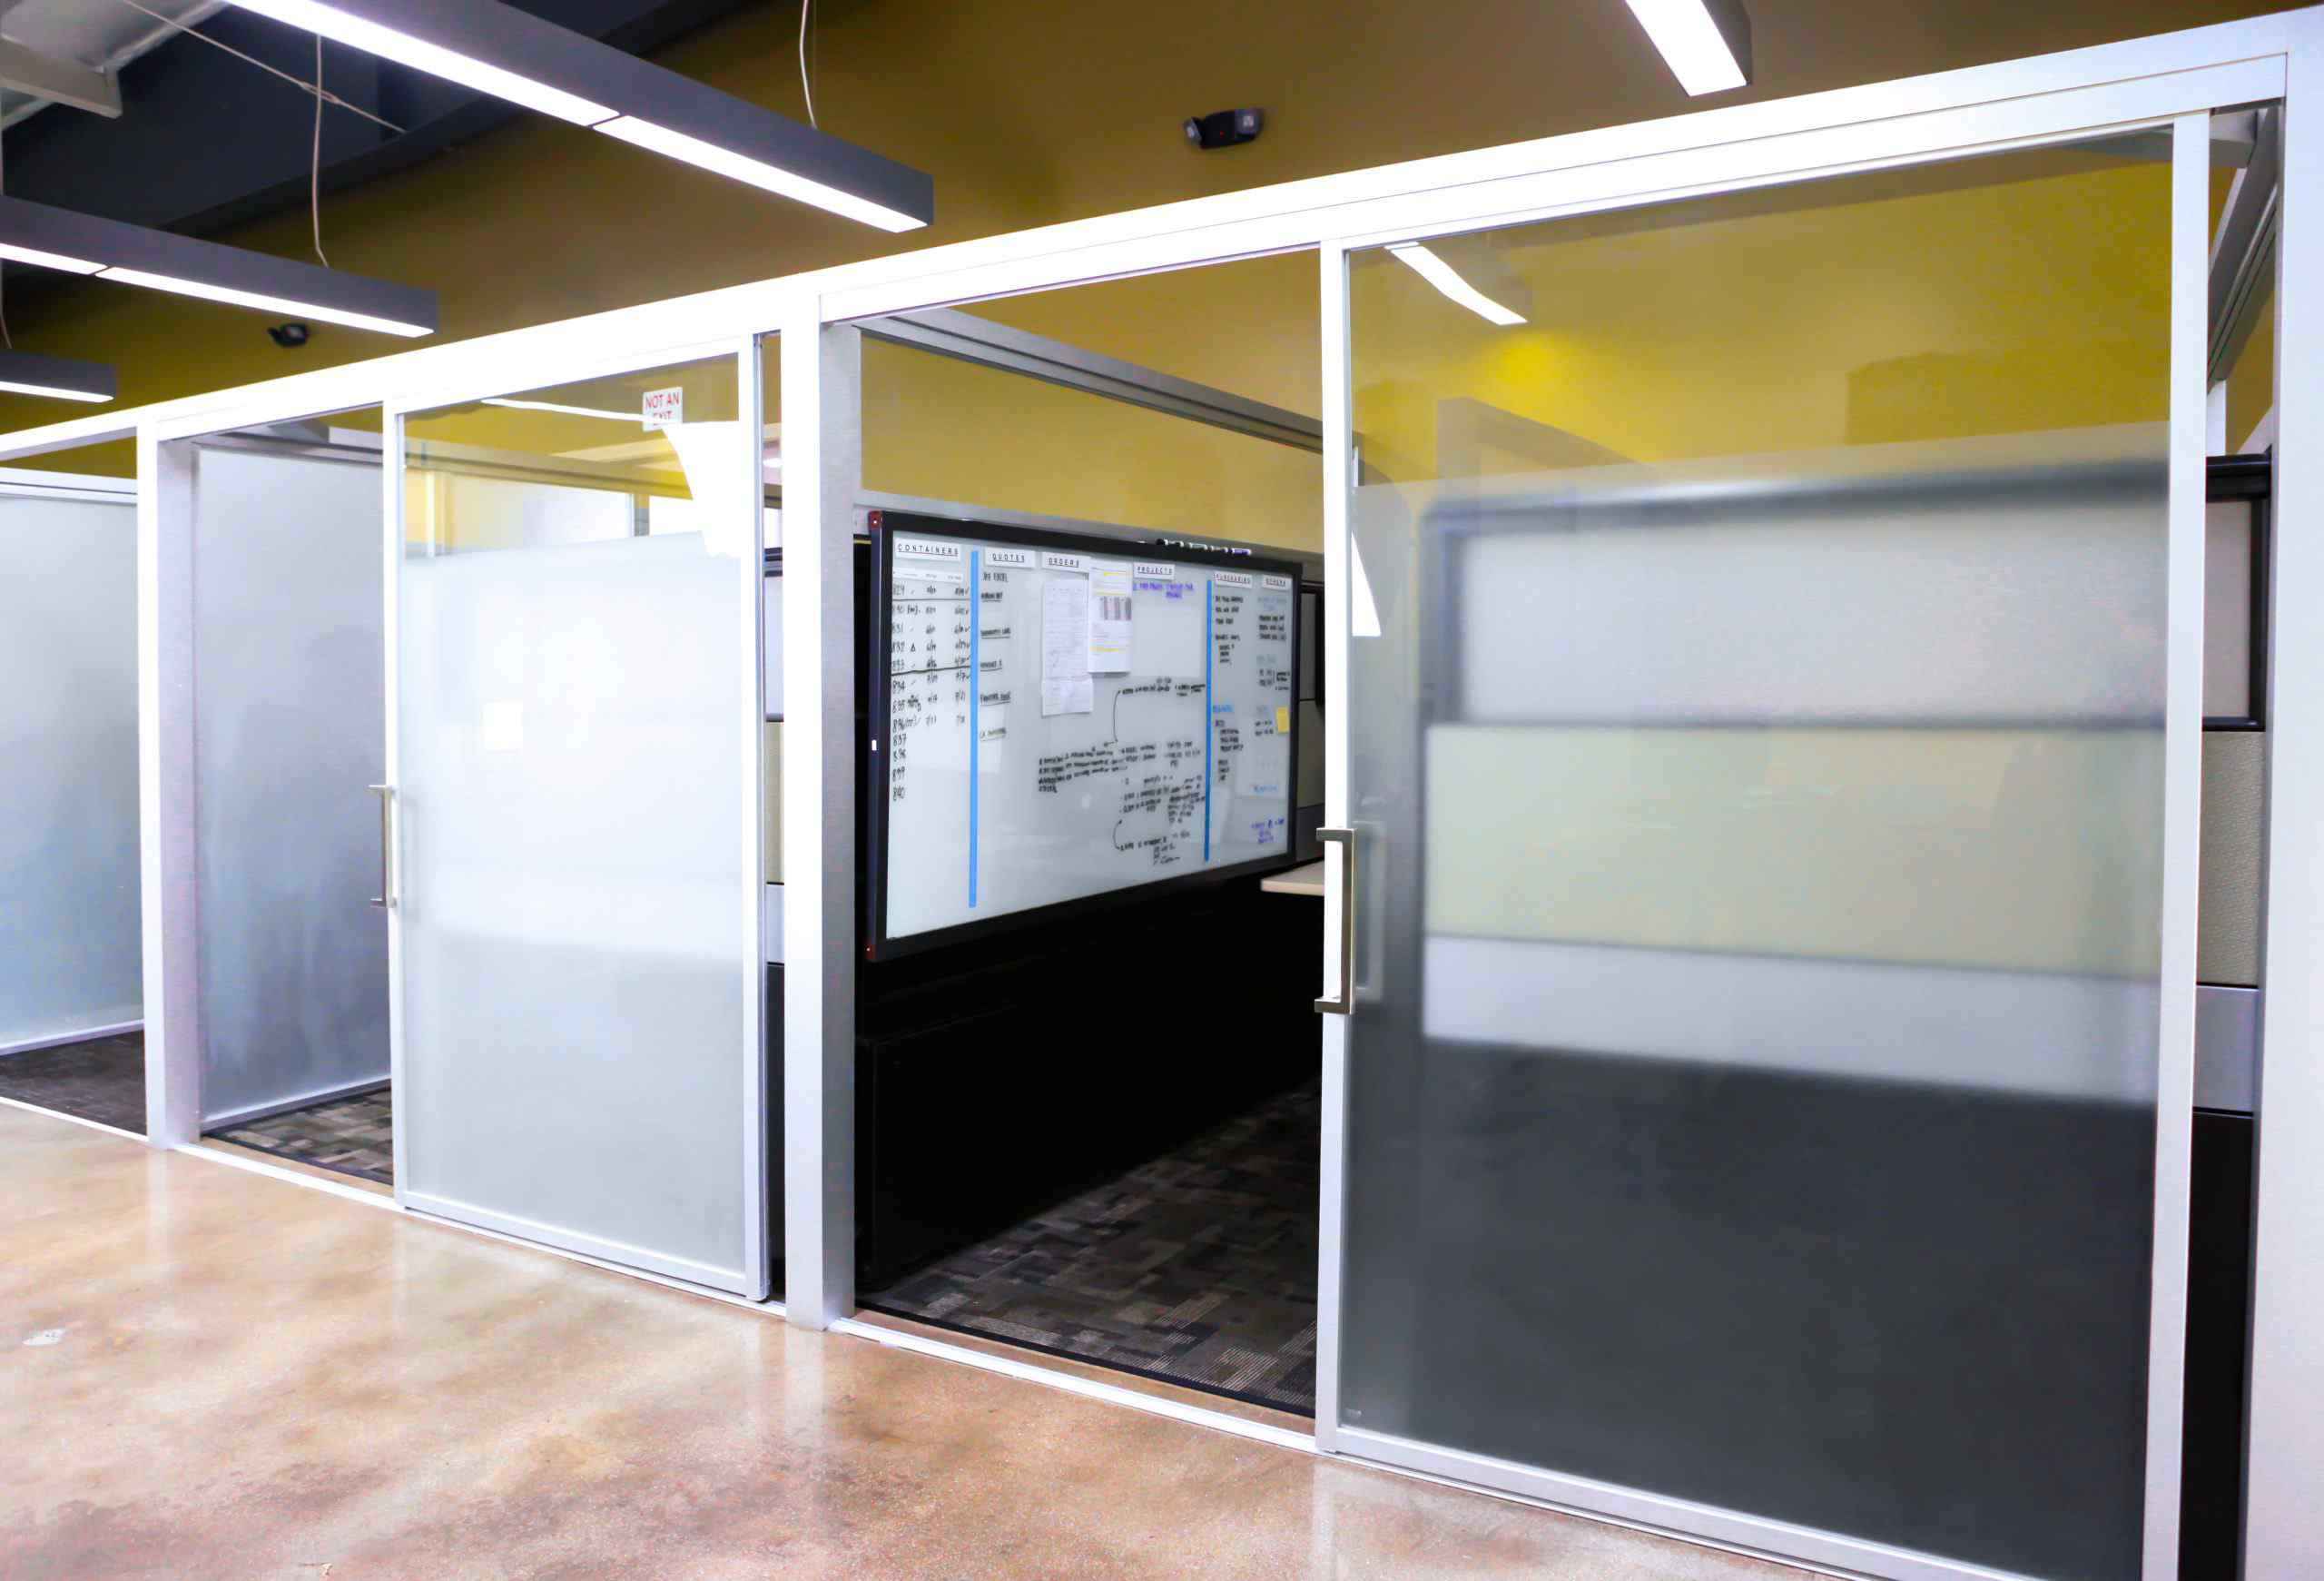 qubiglass separate office cubicles room dividers